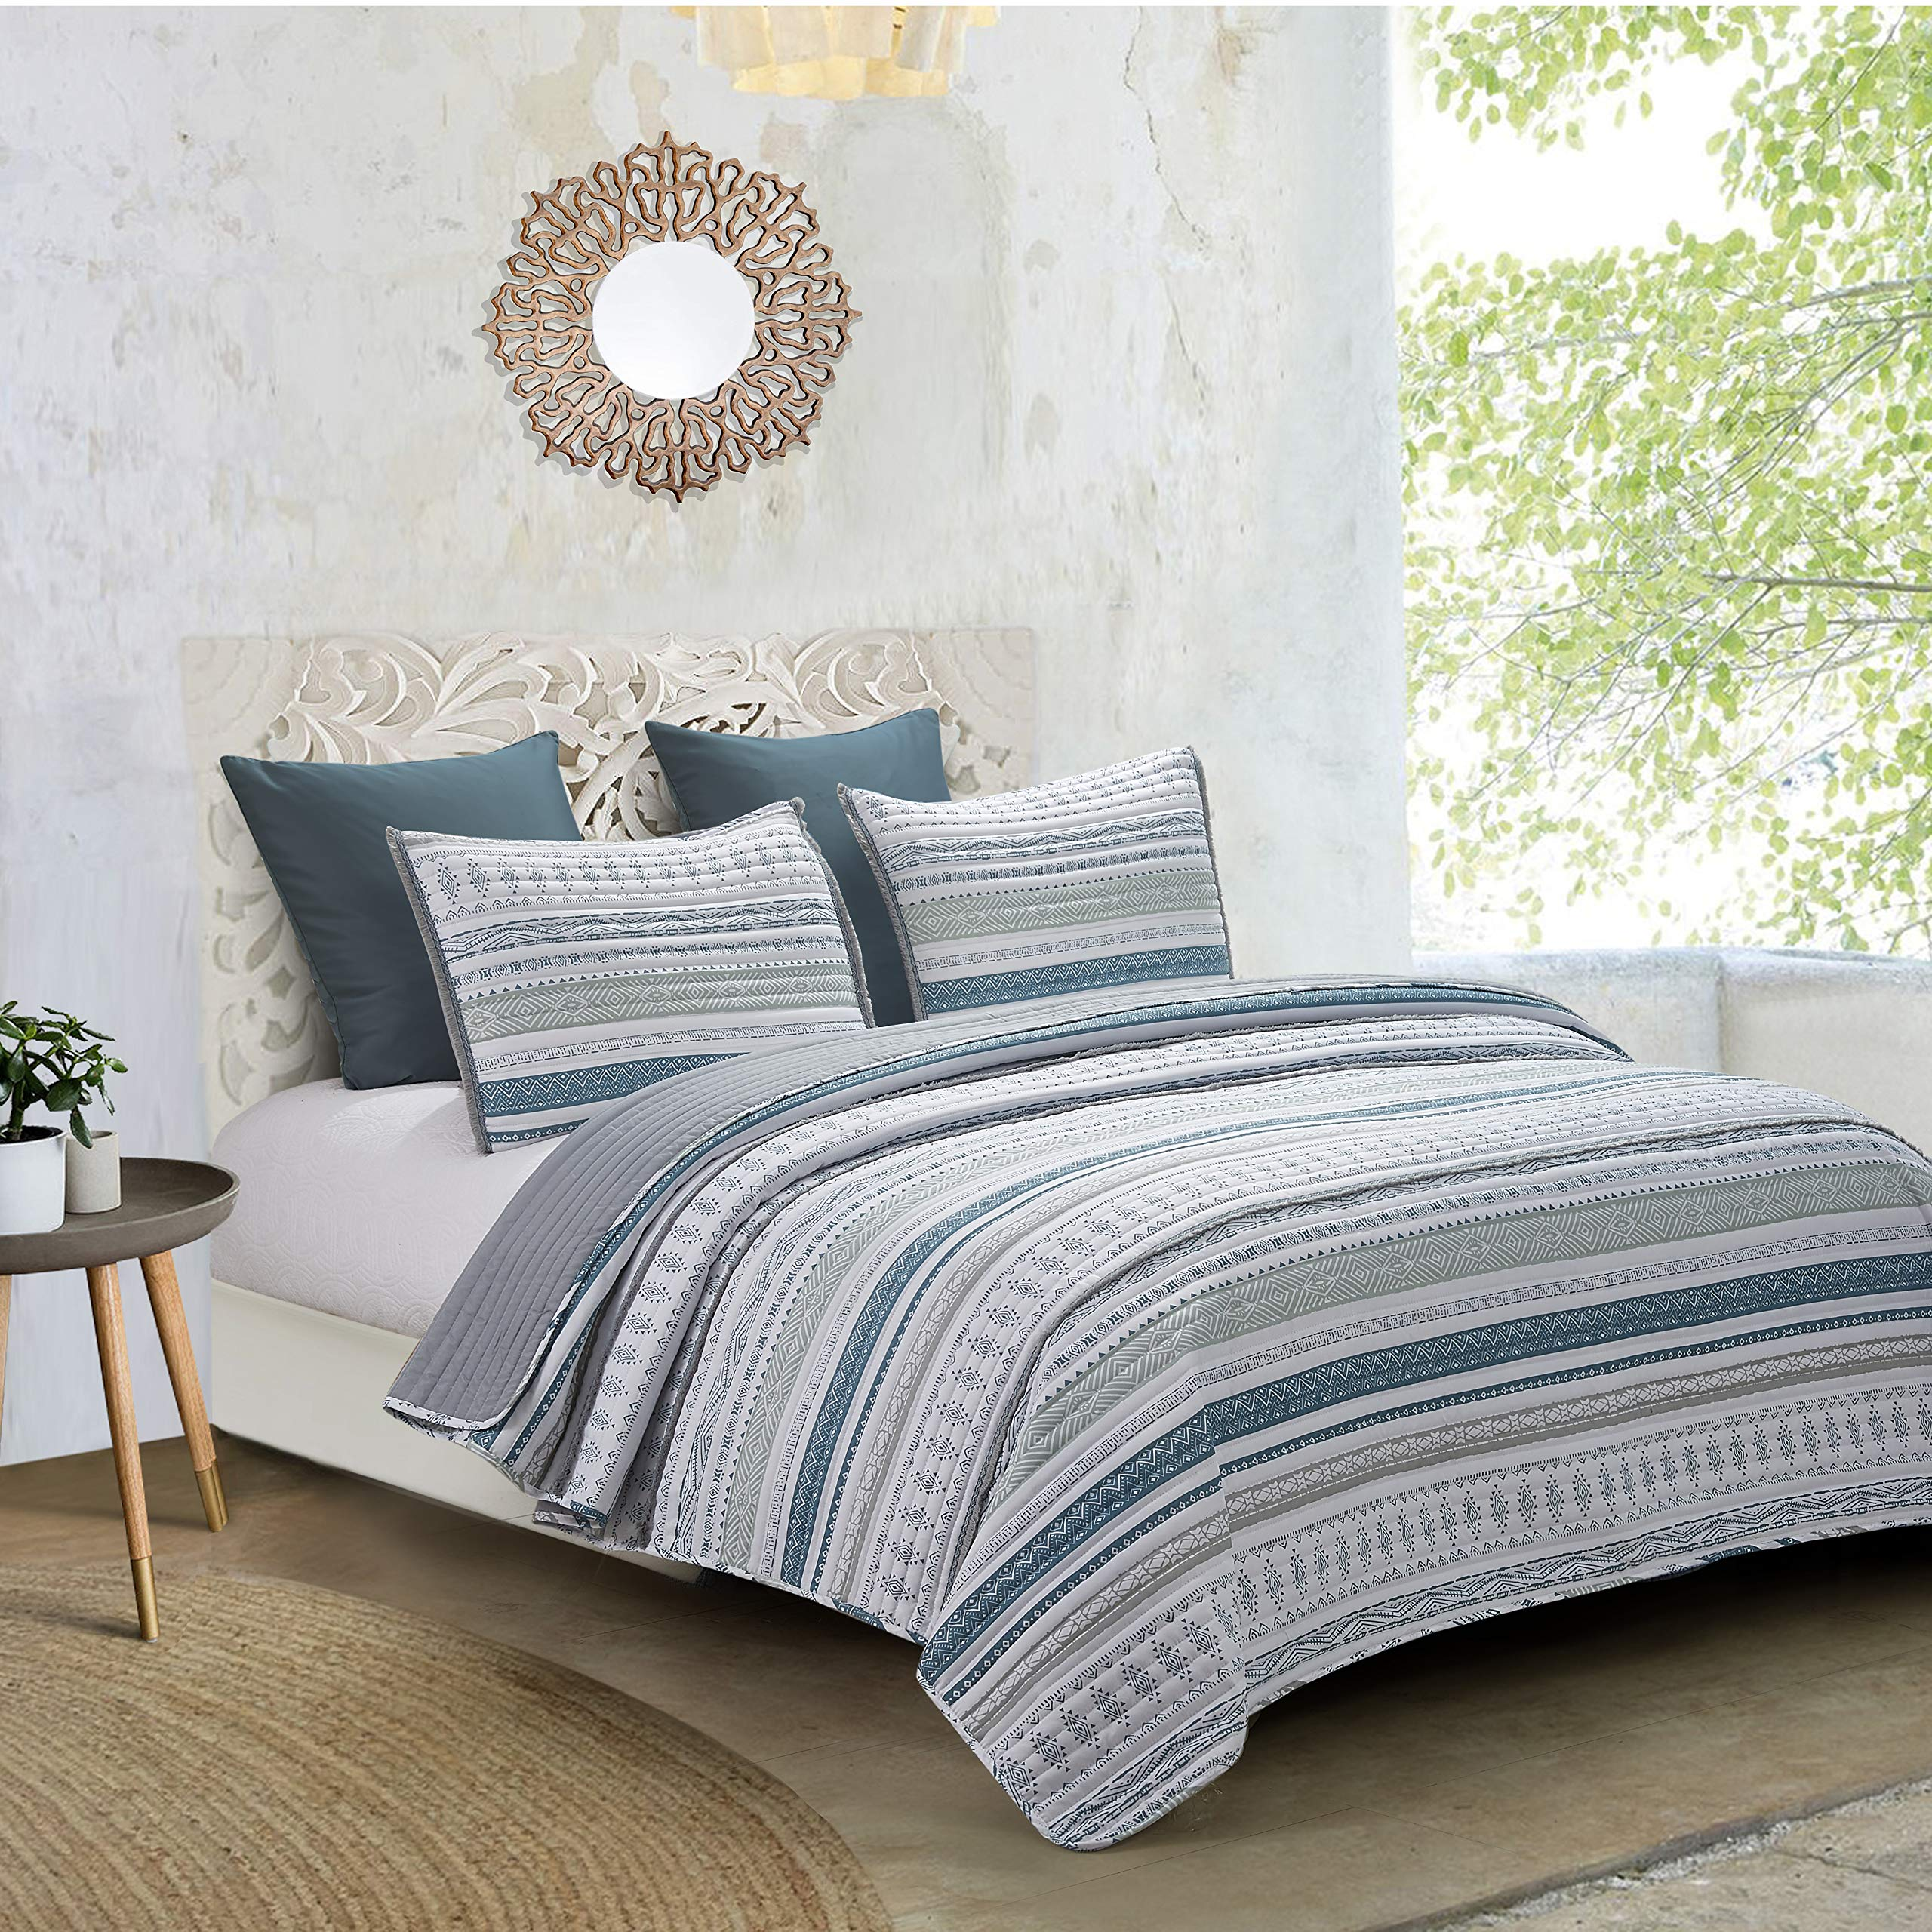 Hedaya Home Fashions Primitive Reversible, Boho Chic Tribal Stripes with Embroidered Fringe, 2-Piece Set with Quilt and Pillow Sham - Twin Blue/Grey